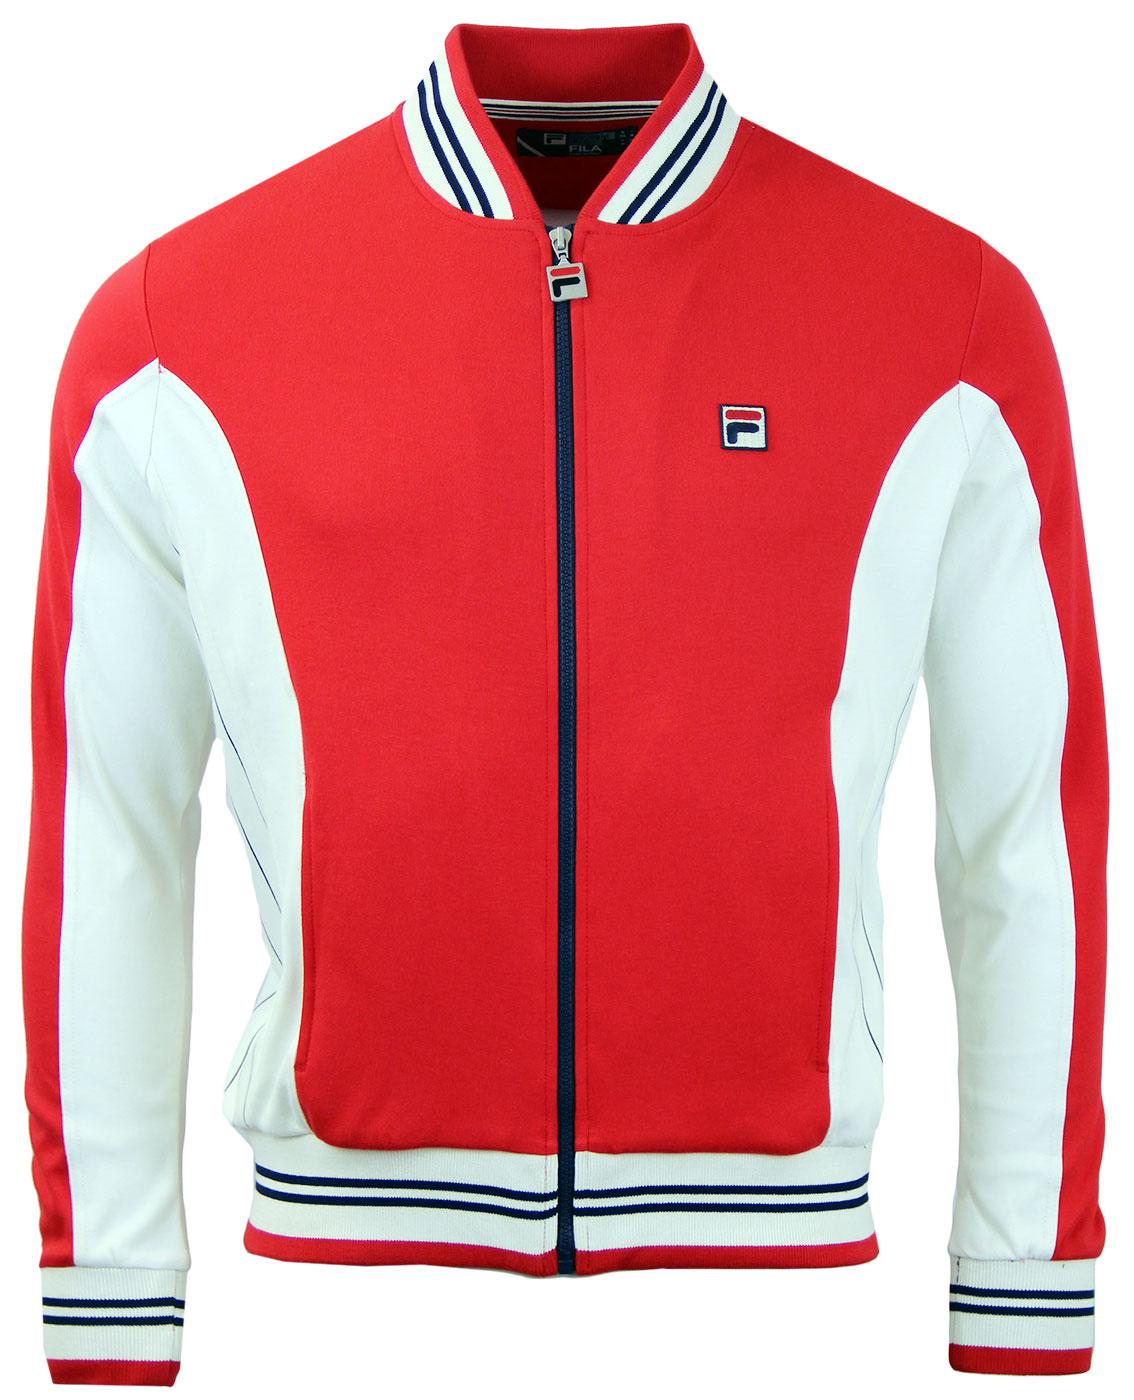 Settanta FILA VINTAGE Track Jacket with Headband